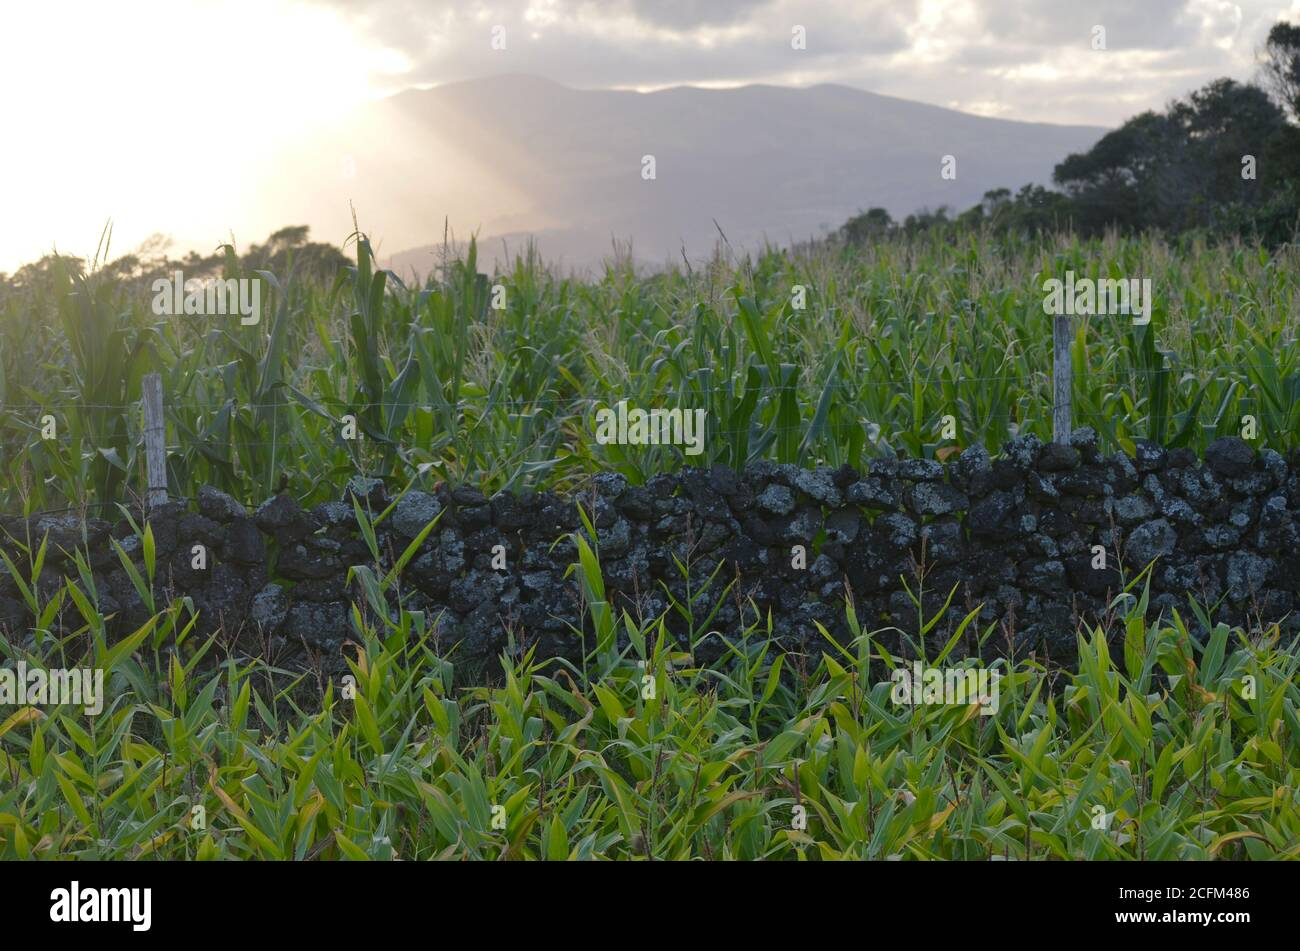 Small-scale maize production in the island of Pico, Azores archipelago, Portugal Stock Photo